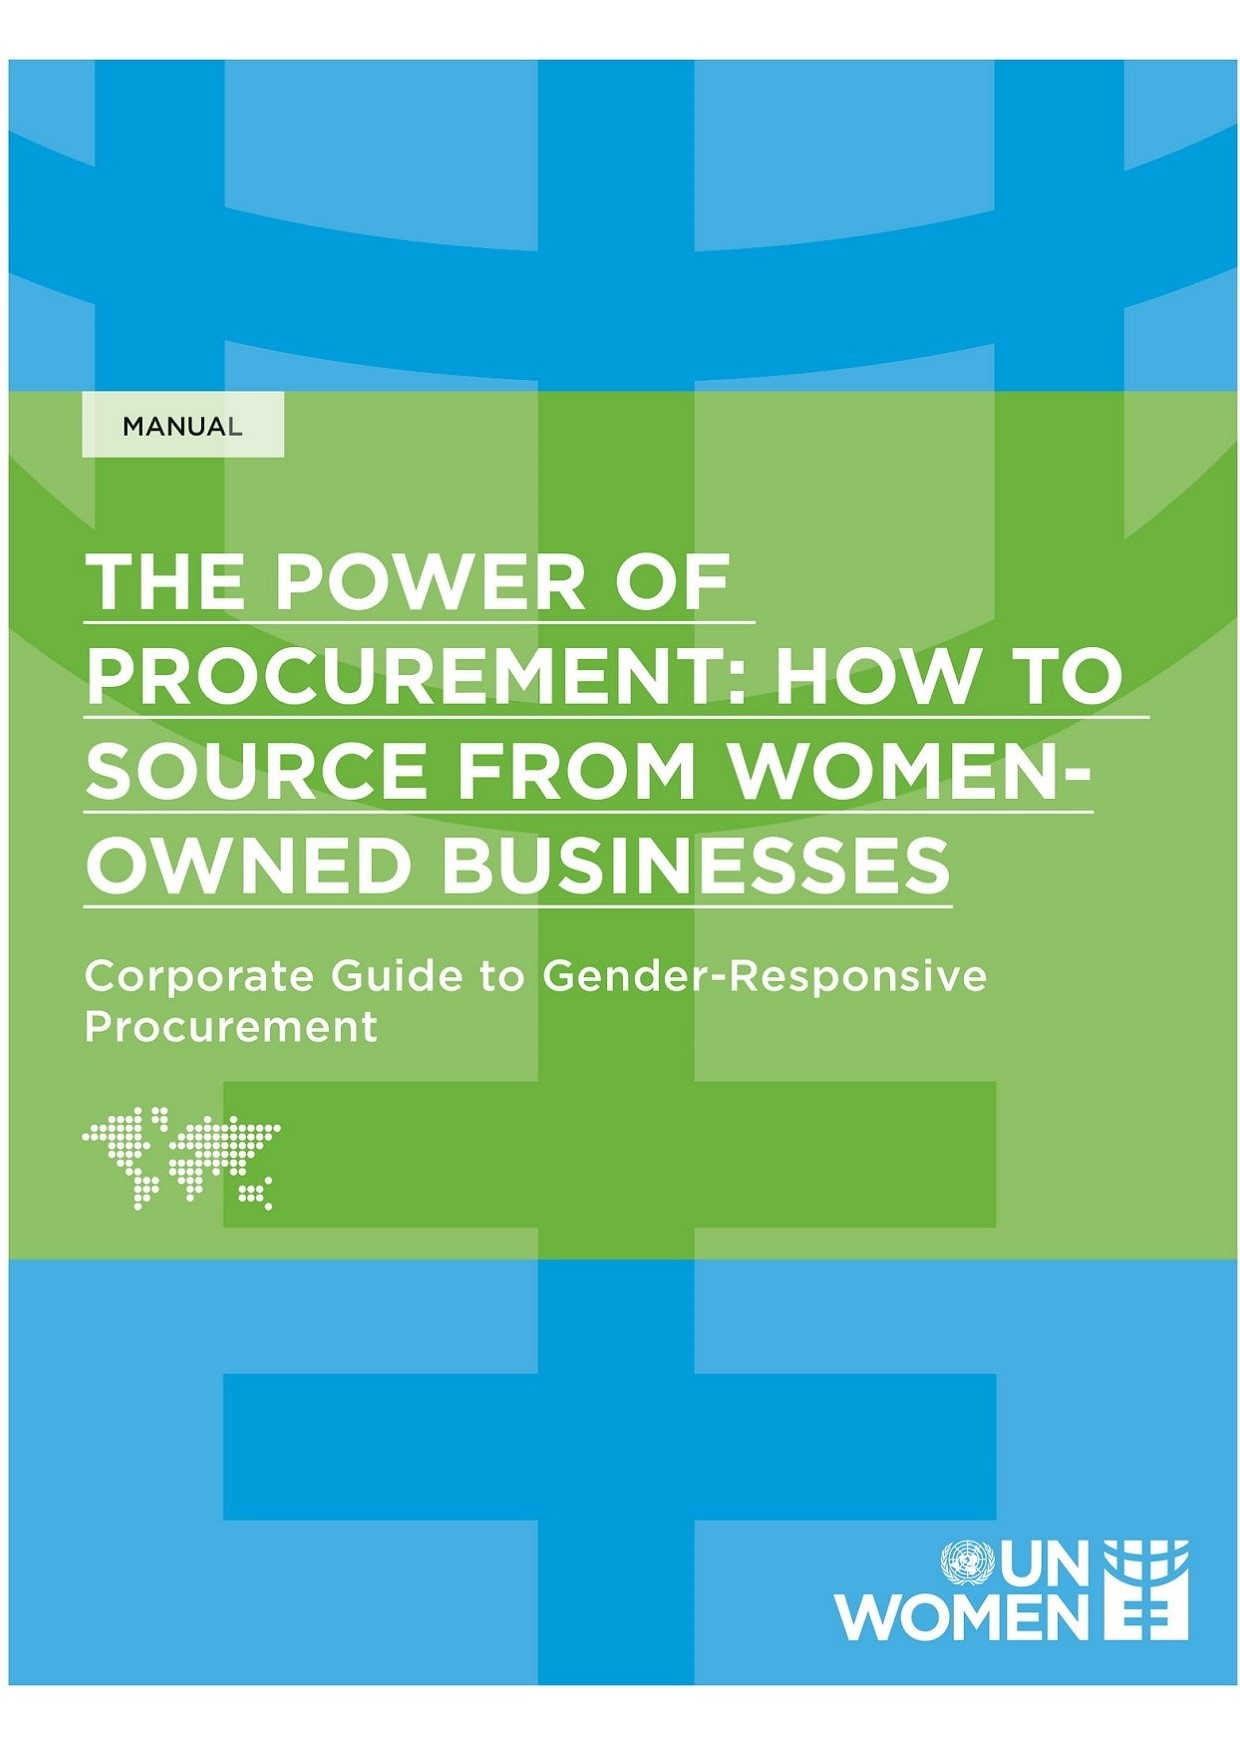 The Power of Procurement: How to Source from Women-owned Businesses. Photo: UN Women